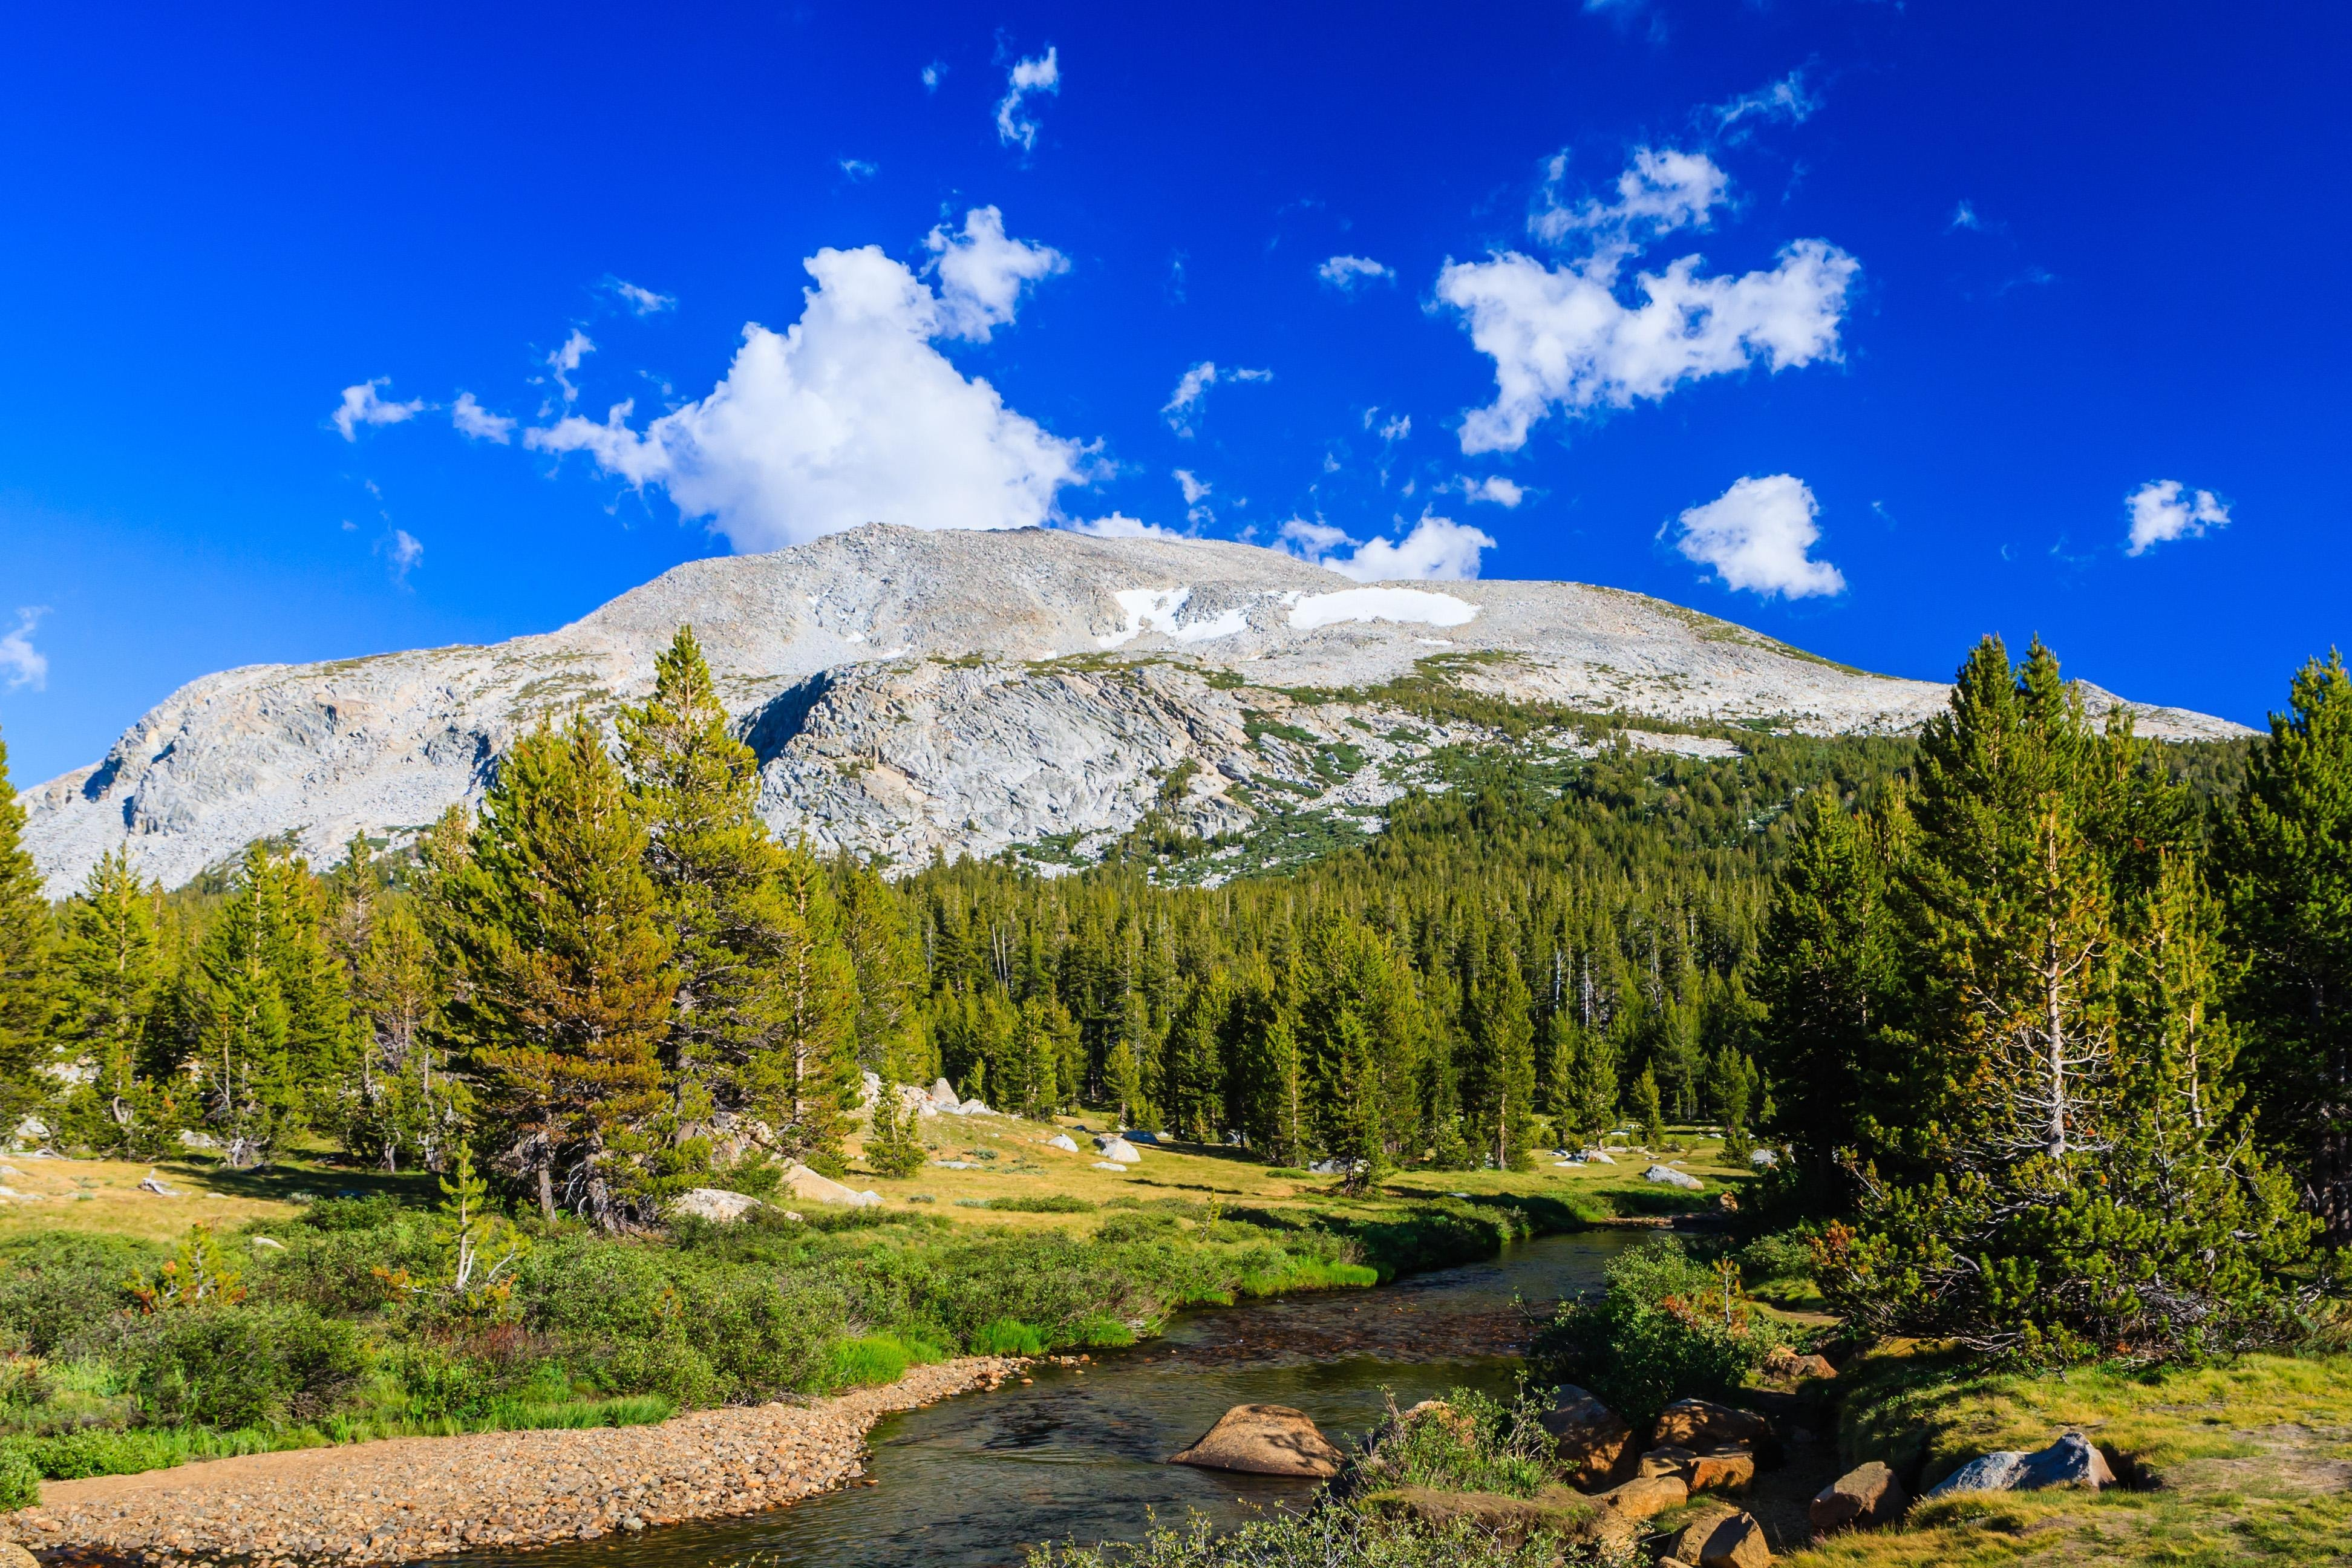 How to Spend 3 Days in Yosemite National Park